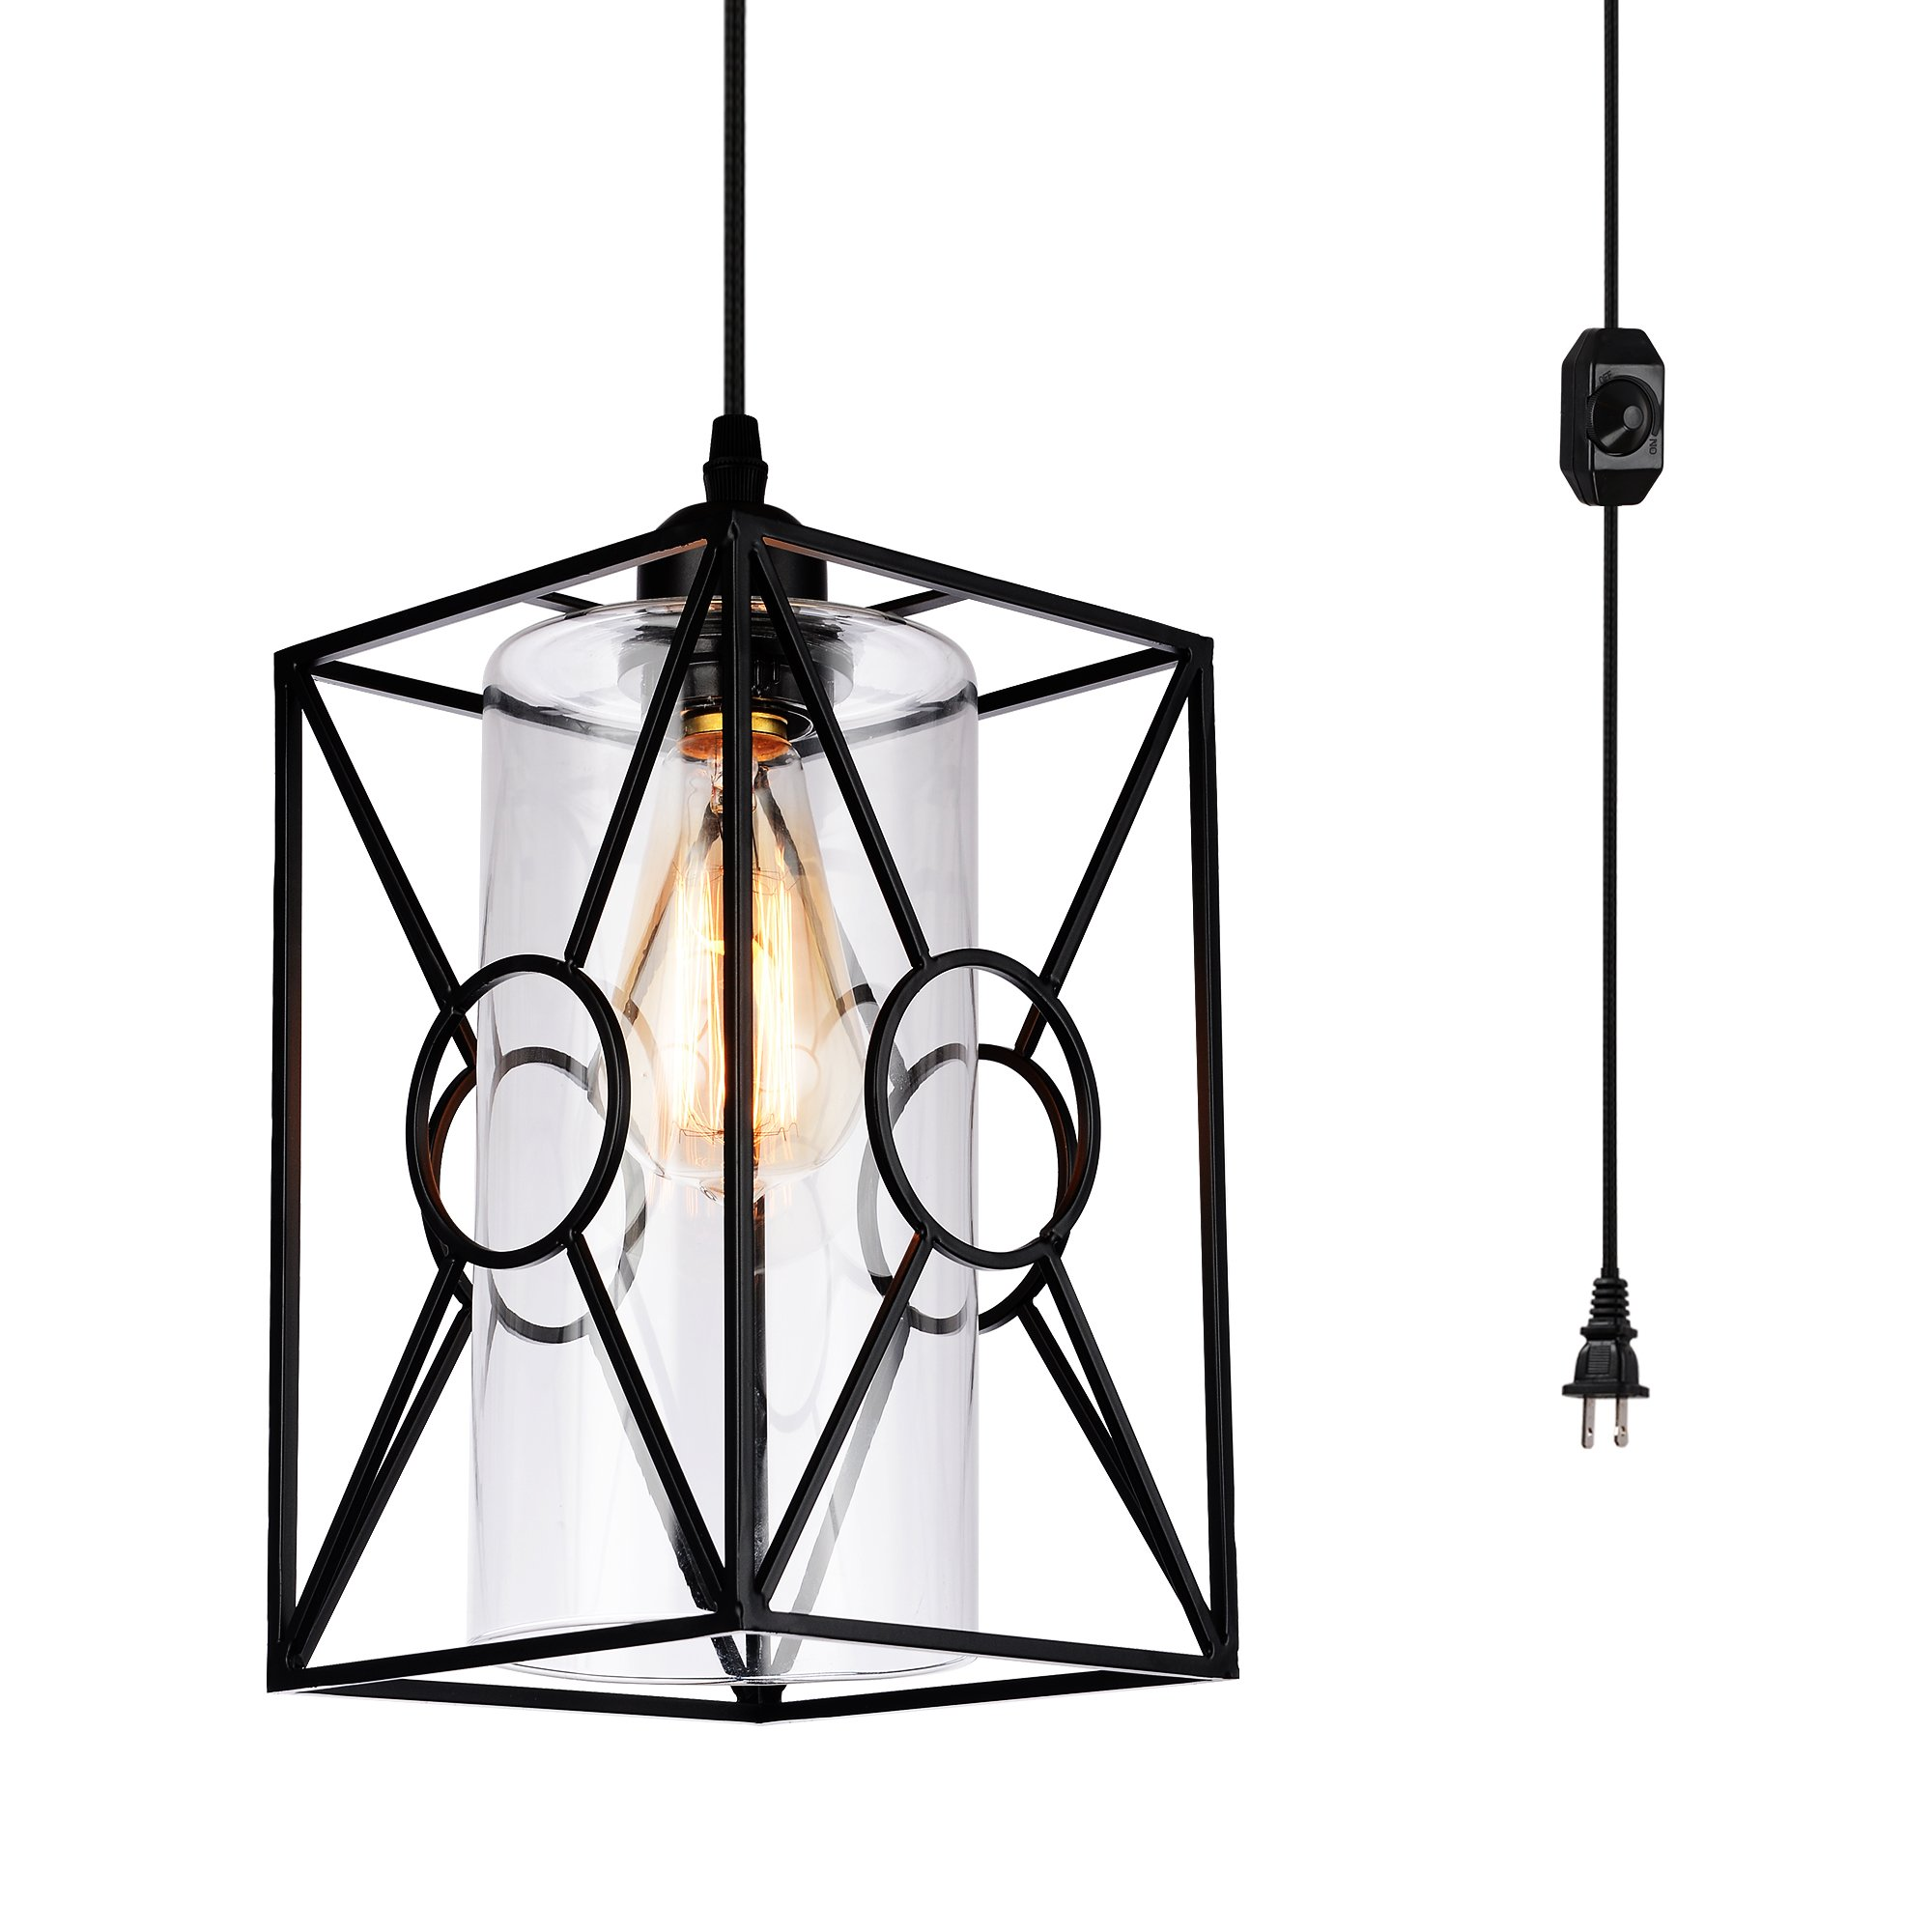 HMVPL Plug-in Pendant Lights with Glass Lamp-Shade, 16.4 ft Hanging Cord and On/Off Dimmer Switch, Industrial Metal Swag Ceiling Lamps for Dining Room Bed Room Kitchen Island Table Foyer Entryway